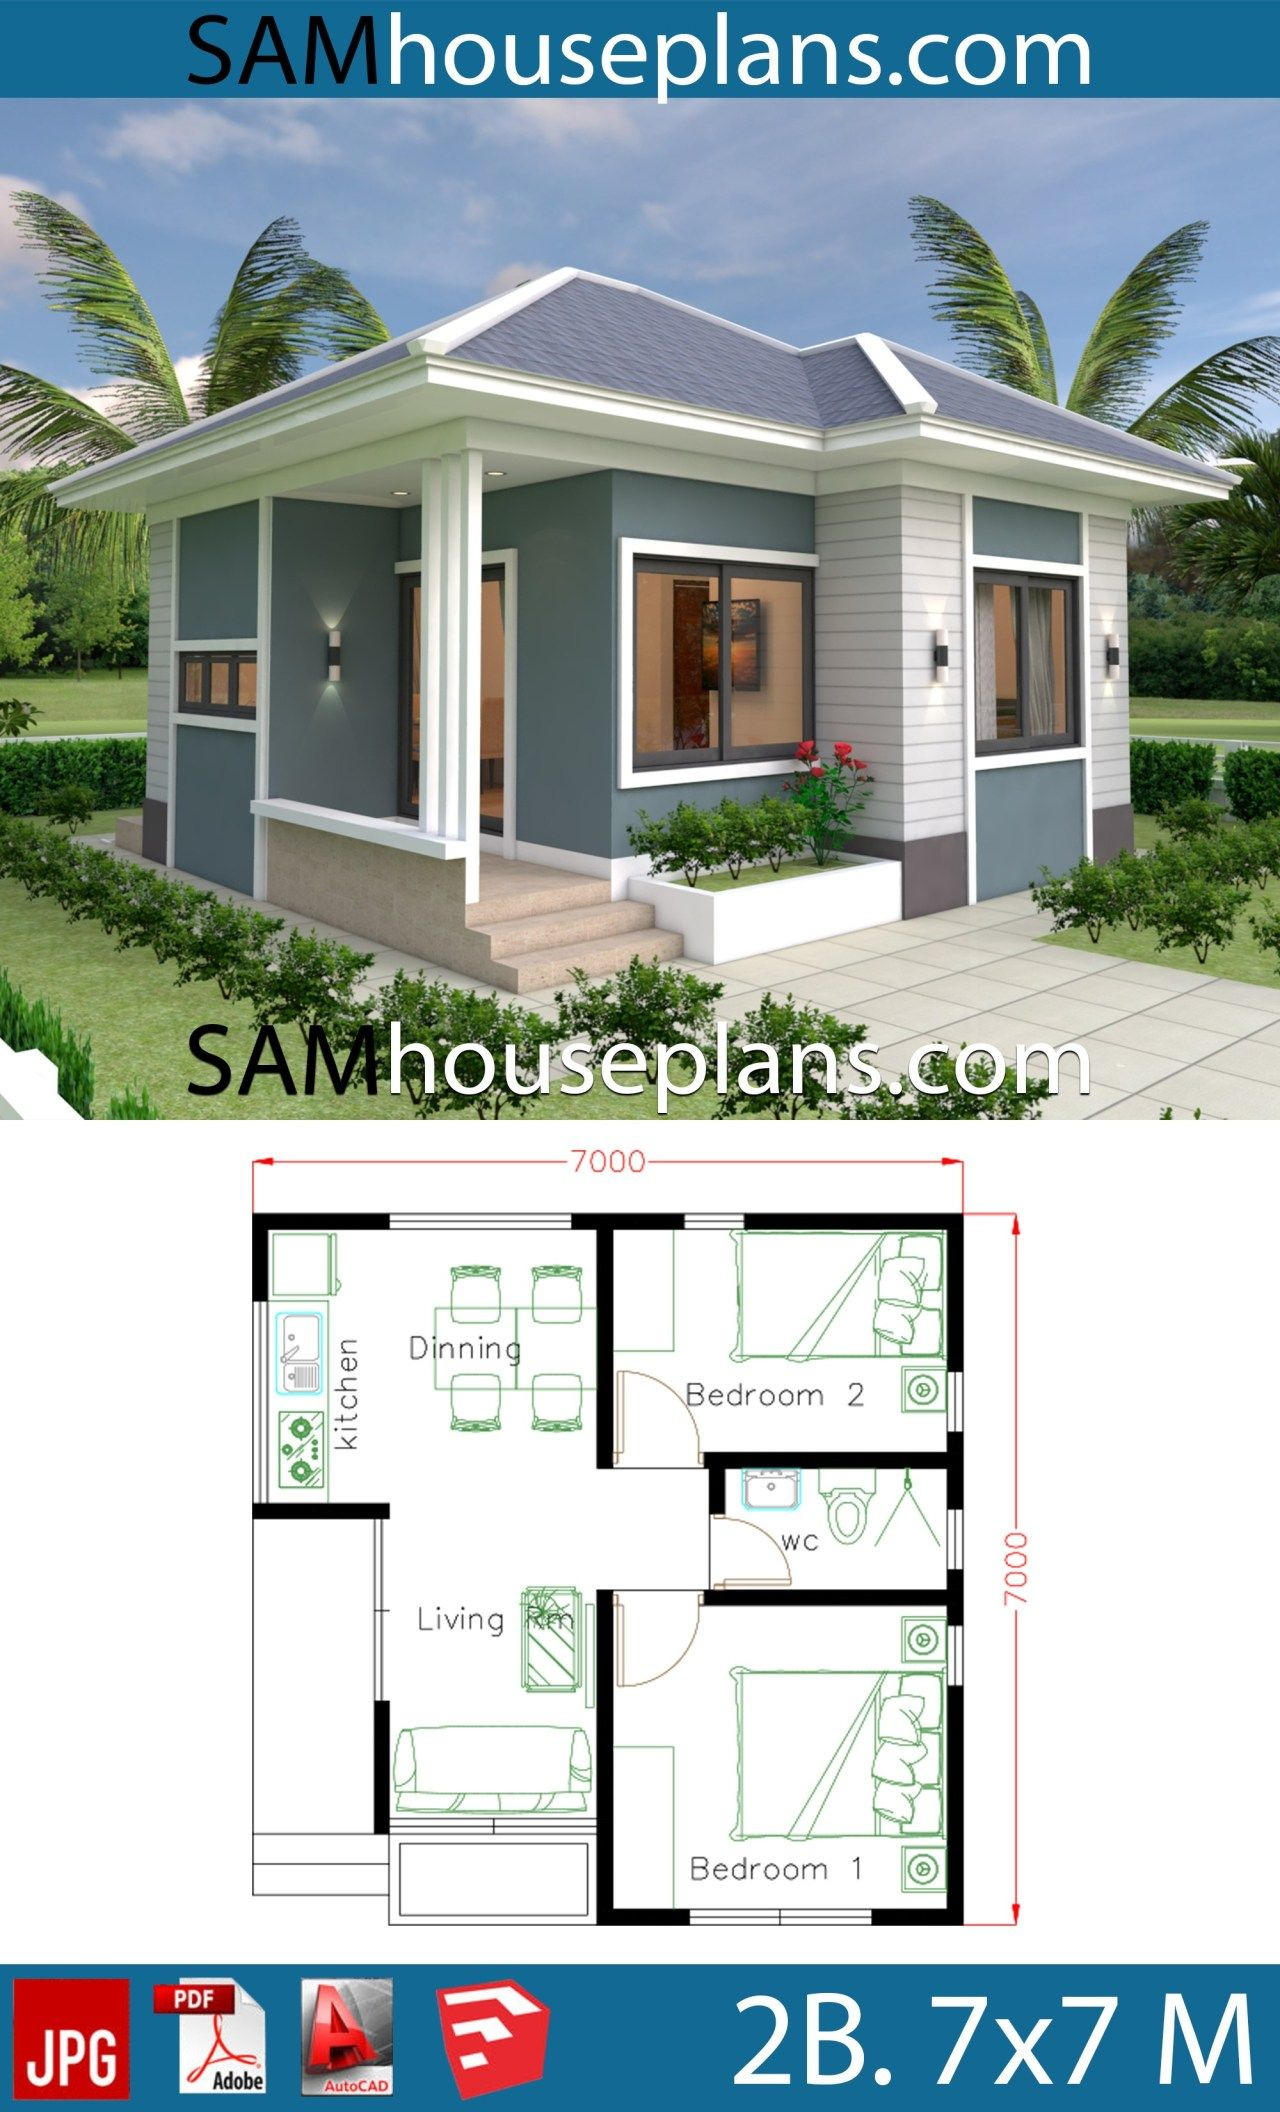 Best Small House Plans Inspirational Small House Design Plans 7x7 with 2 Bedrooms In 2020